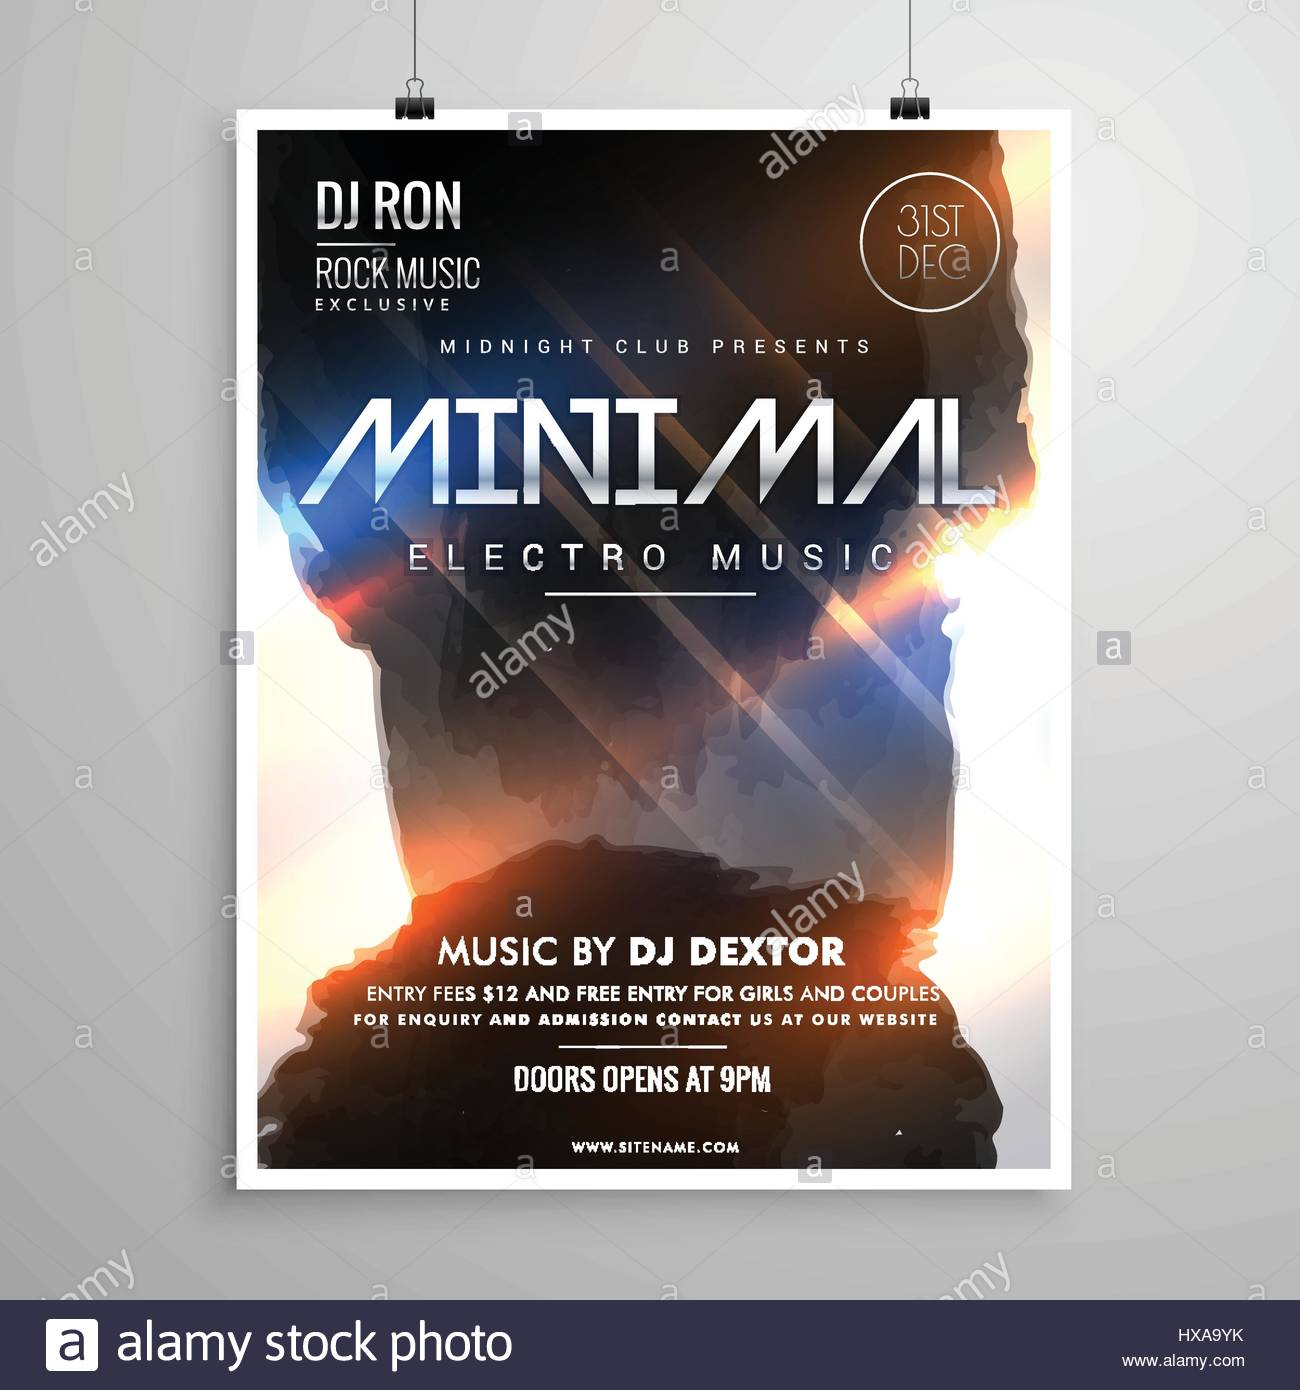 Minimal Grunge Style Music Party Flyer Template With Glowing Lights - Stock  Image